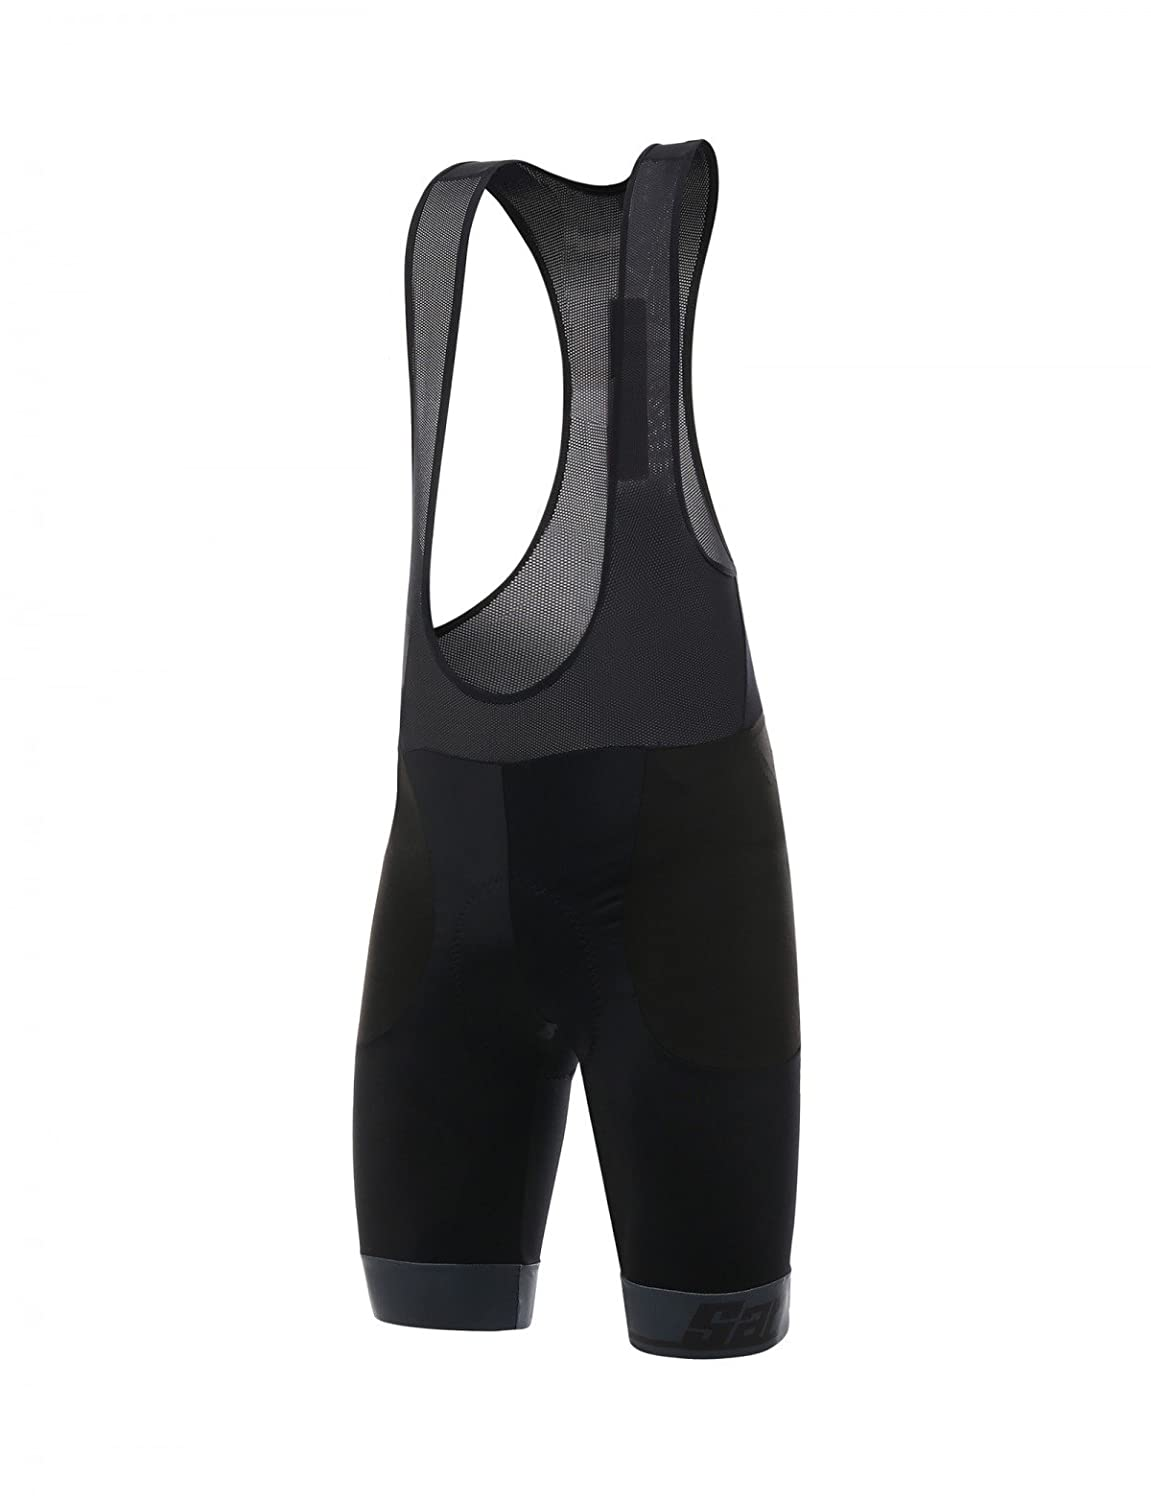 Santini Impact Bib Short – Men 's B077ZR2974 Medium|ブラック ブラック Medium